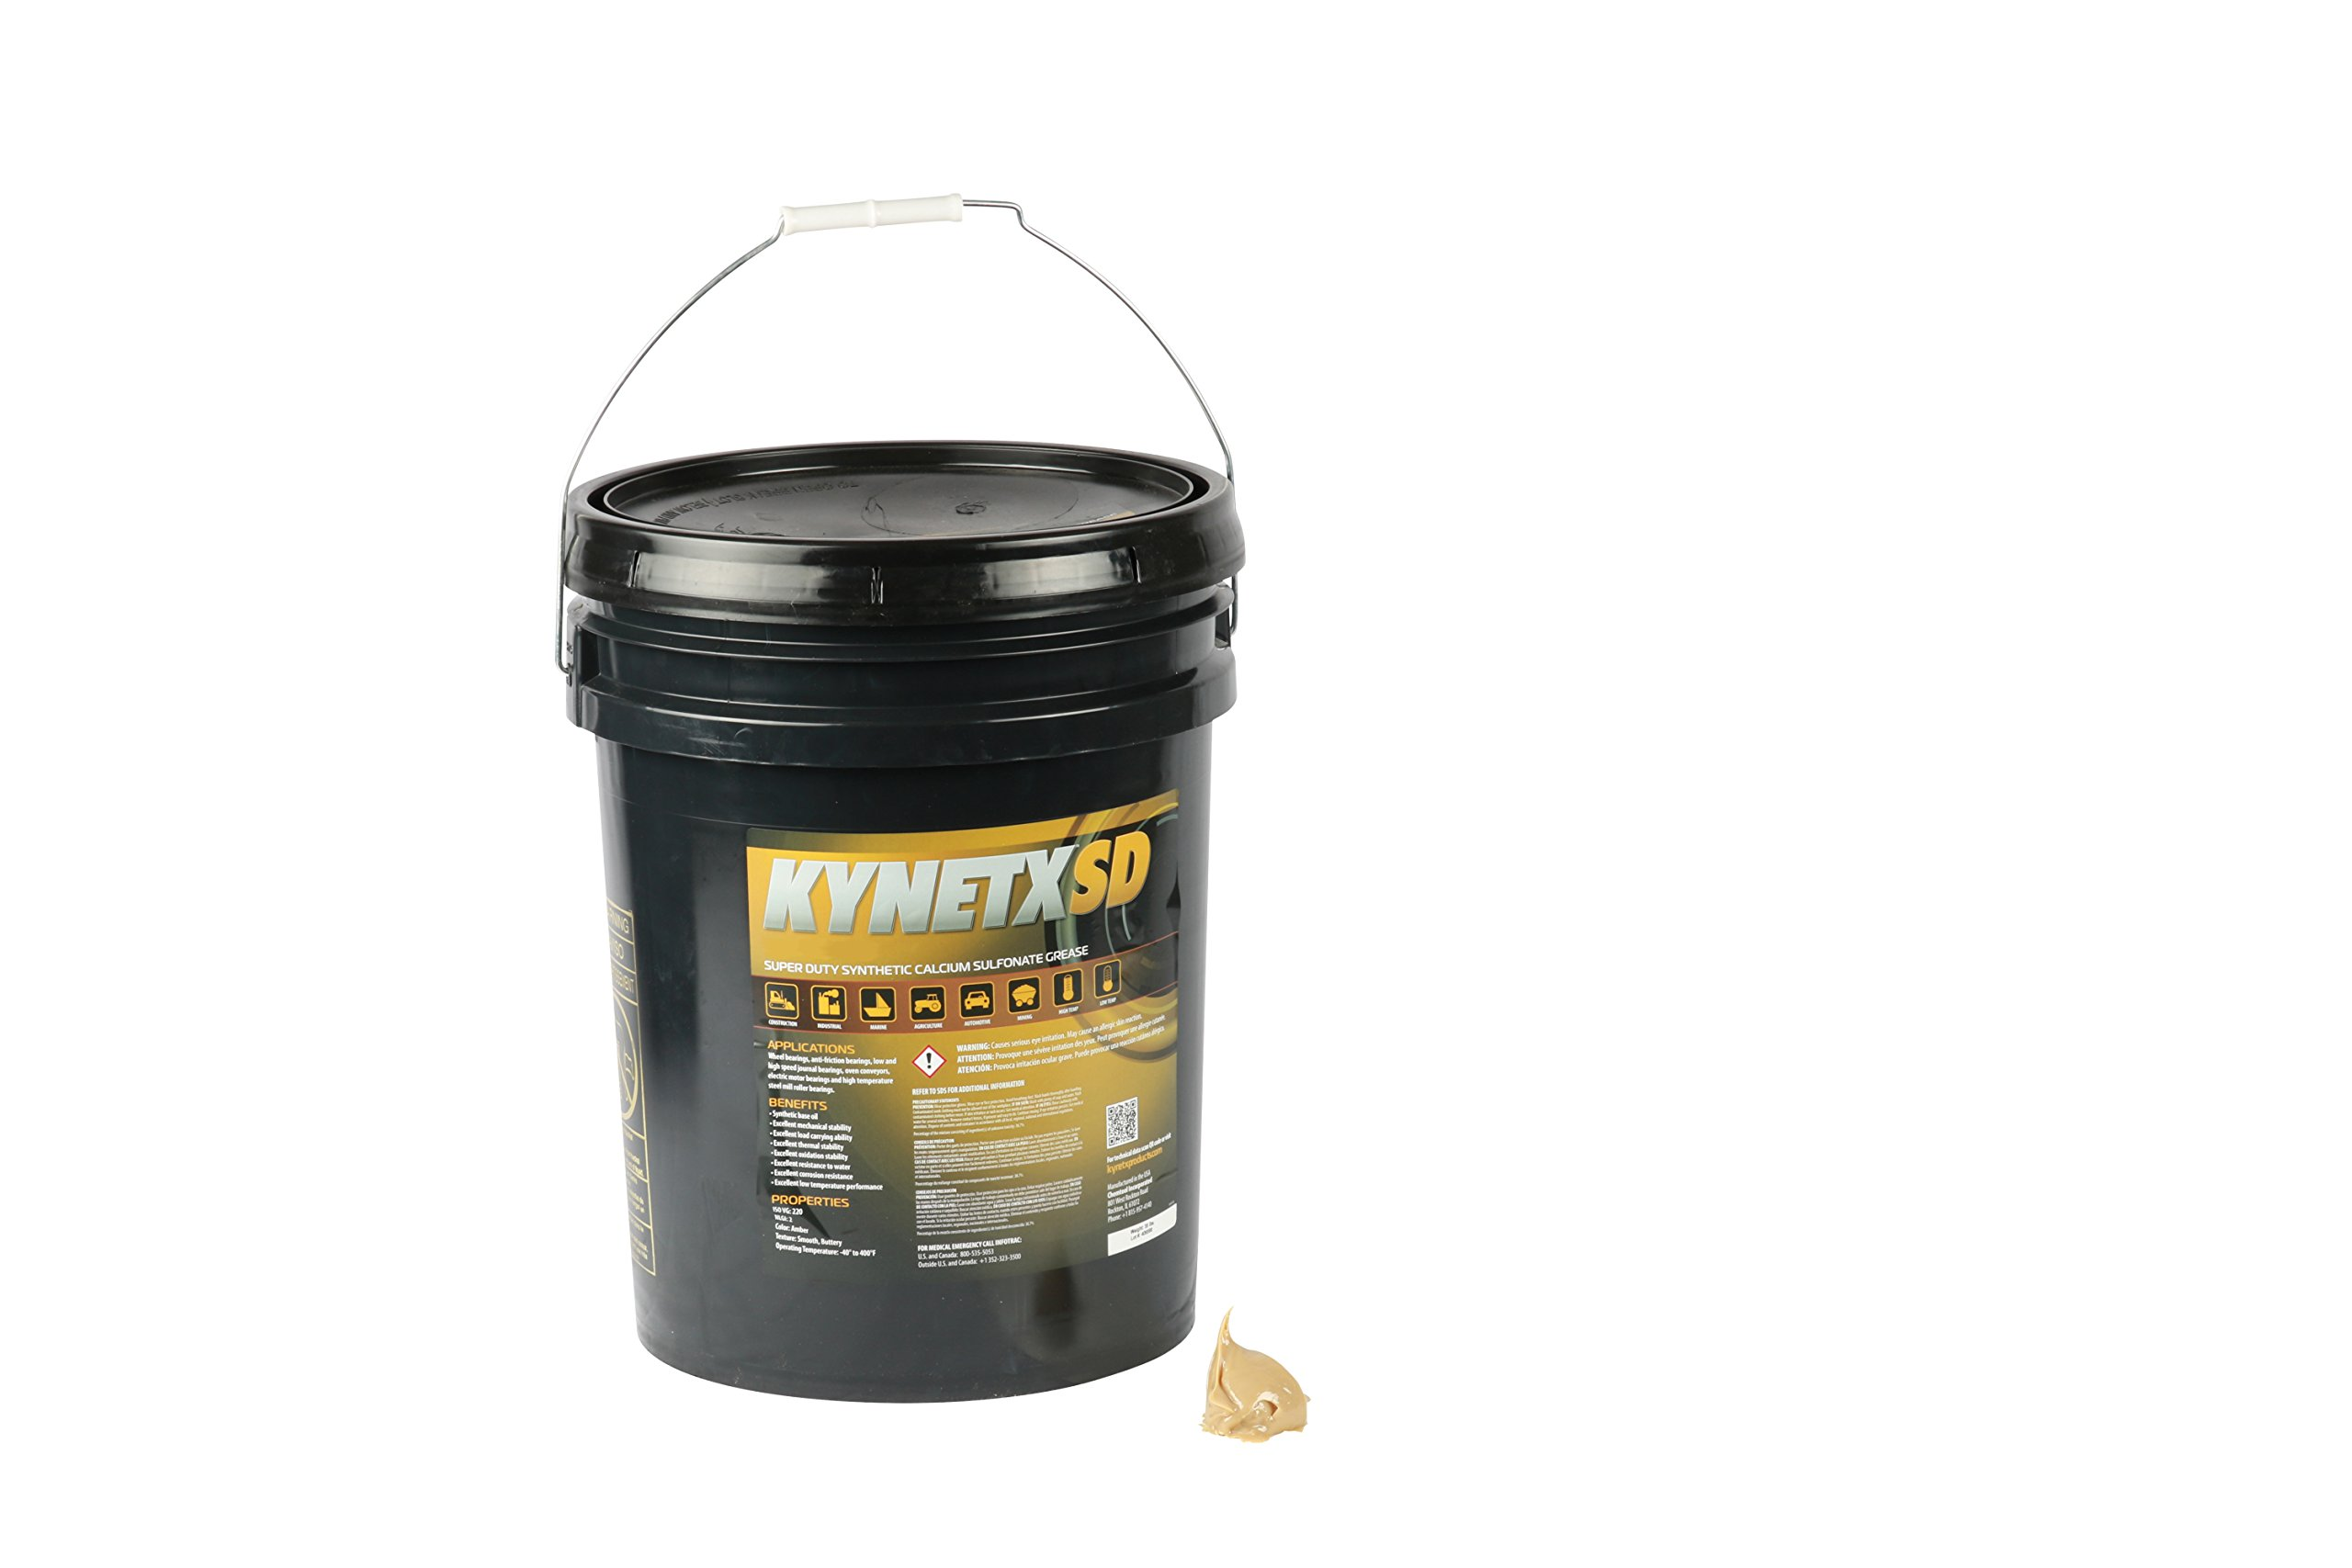 Kynetx Calcium Sulfonate Grease, SD CSN26, 35 Lb. Pail, CSN2645000-KN5014, OBCS Super Duty for Heavy Duty Equipment, Low Temp Extreme Pressure, Construction, Automotive, Mining, Marine, Grade 2